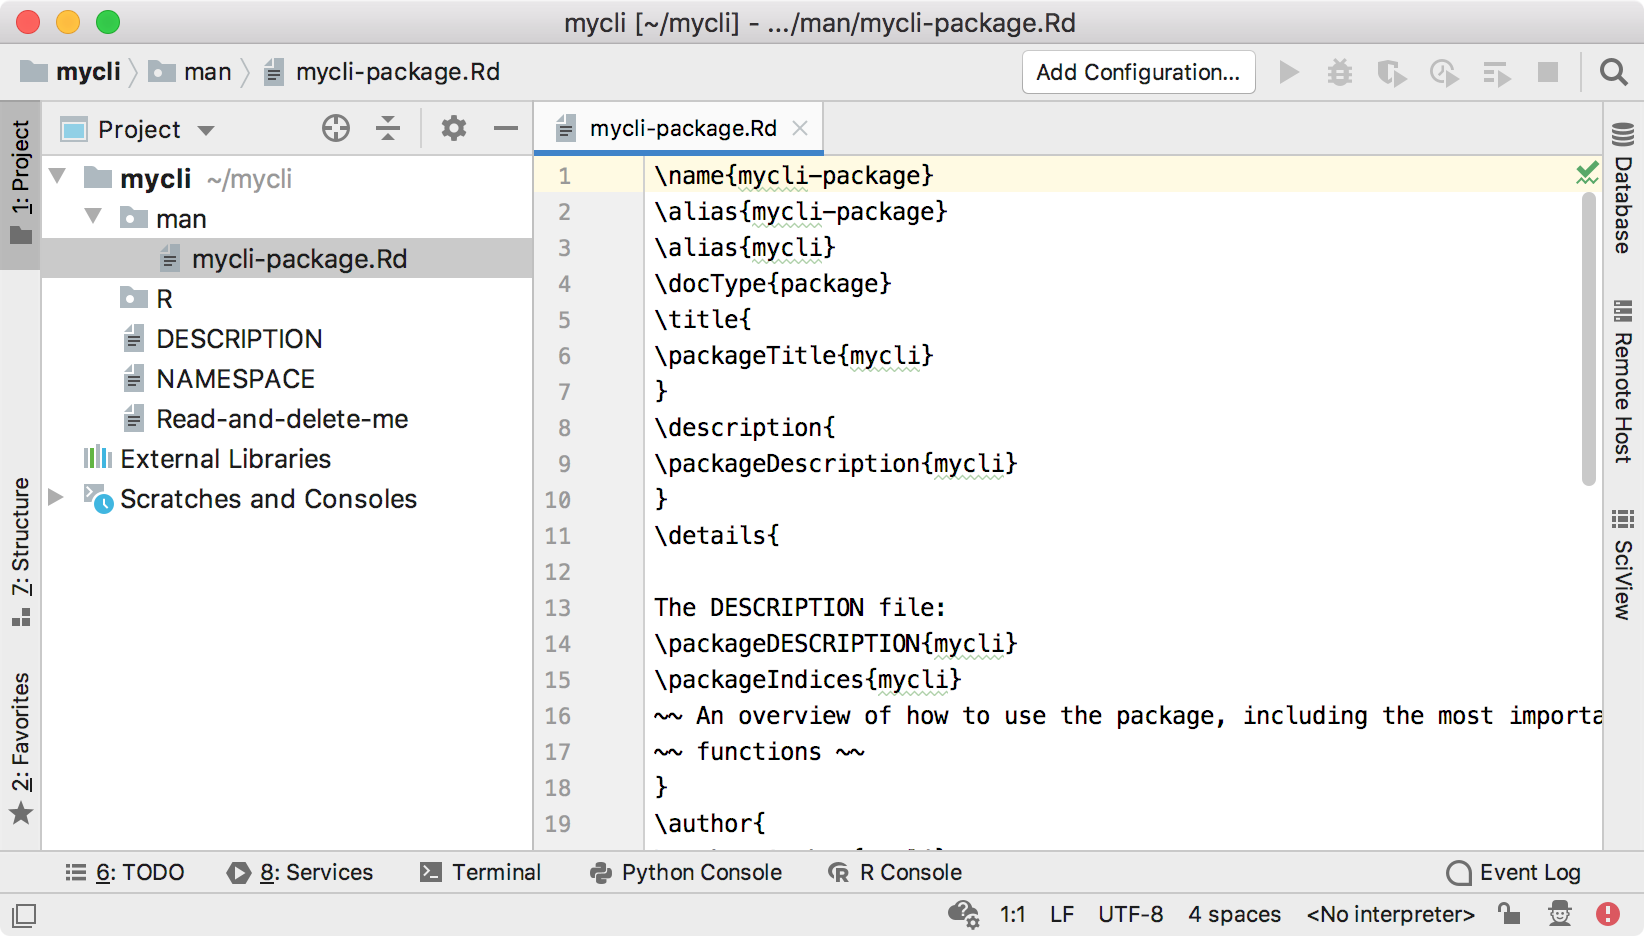 Default structure of an R package